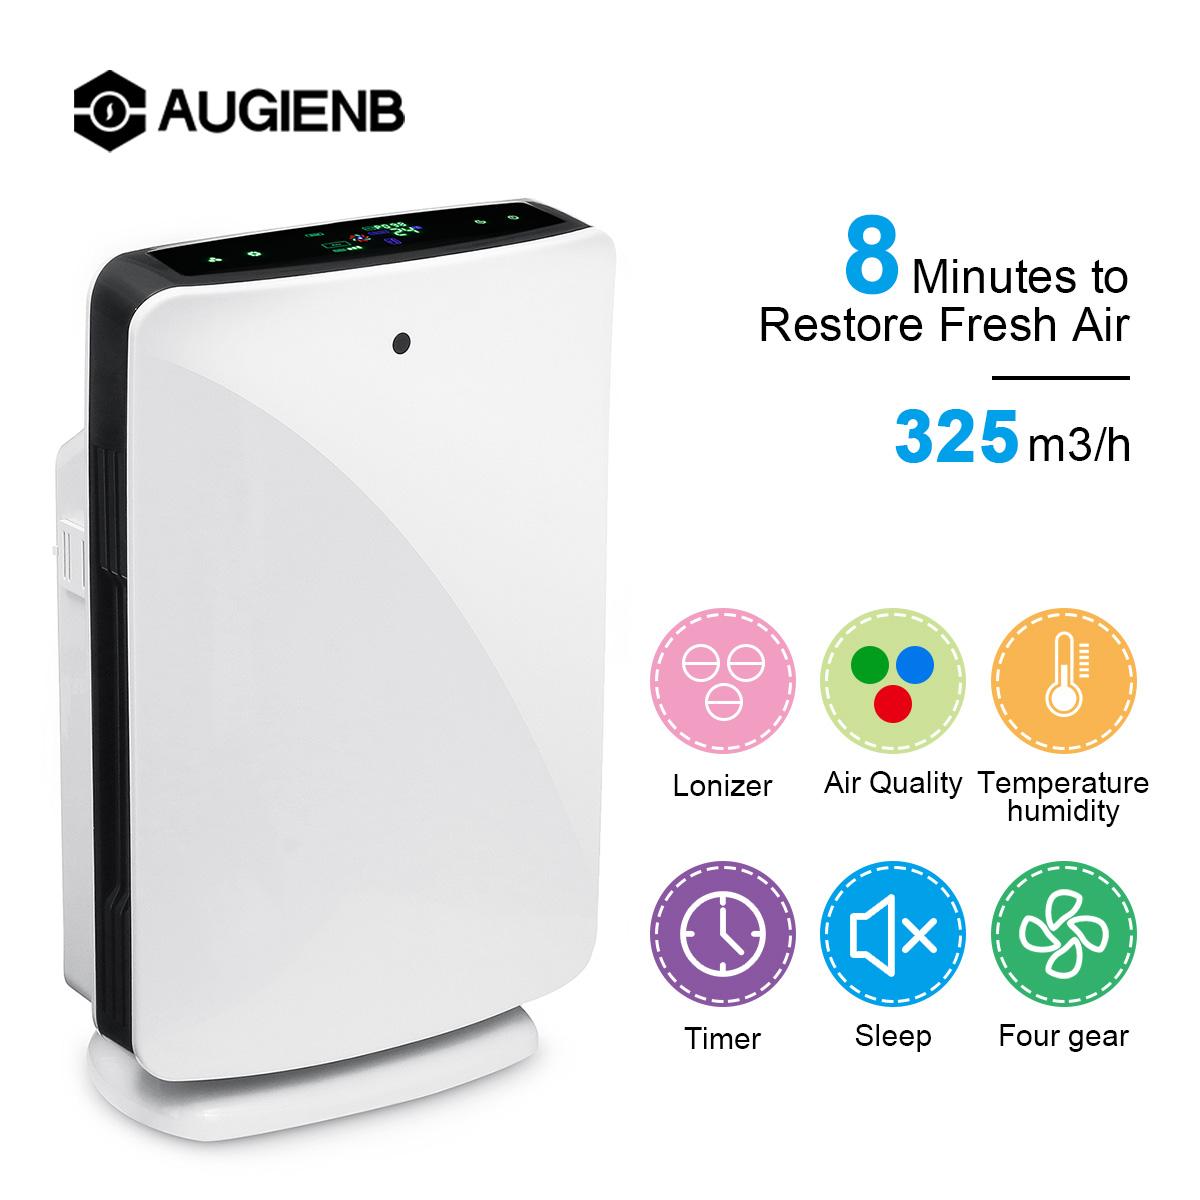 AUGIENB HEPA Filter Home 80W Air Purifier Humidification 5-Stage Odor Allergies Eliminator for PM2.5 Smoke Dust Mold Air CleanerAUGIENB HEPA Filter Home 80W Air Purifier Humidification 5-Stage Odor Allergies Eliminator for PM2.5 Smoke Dust Mold Air Cleaner